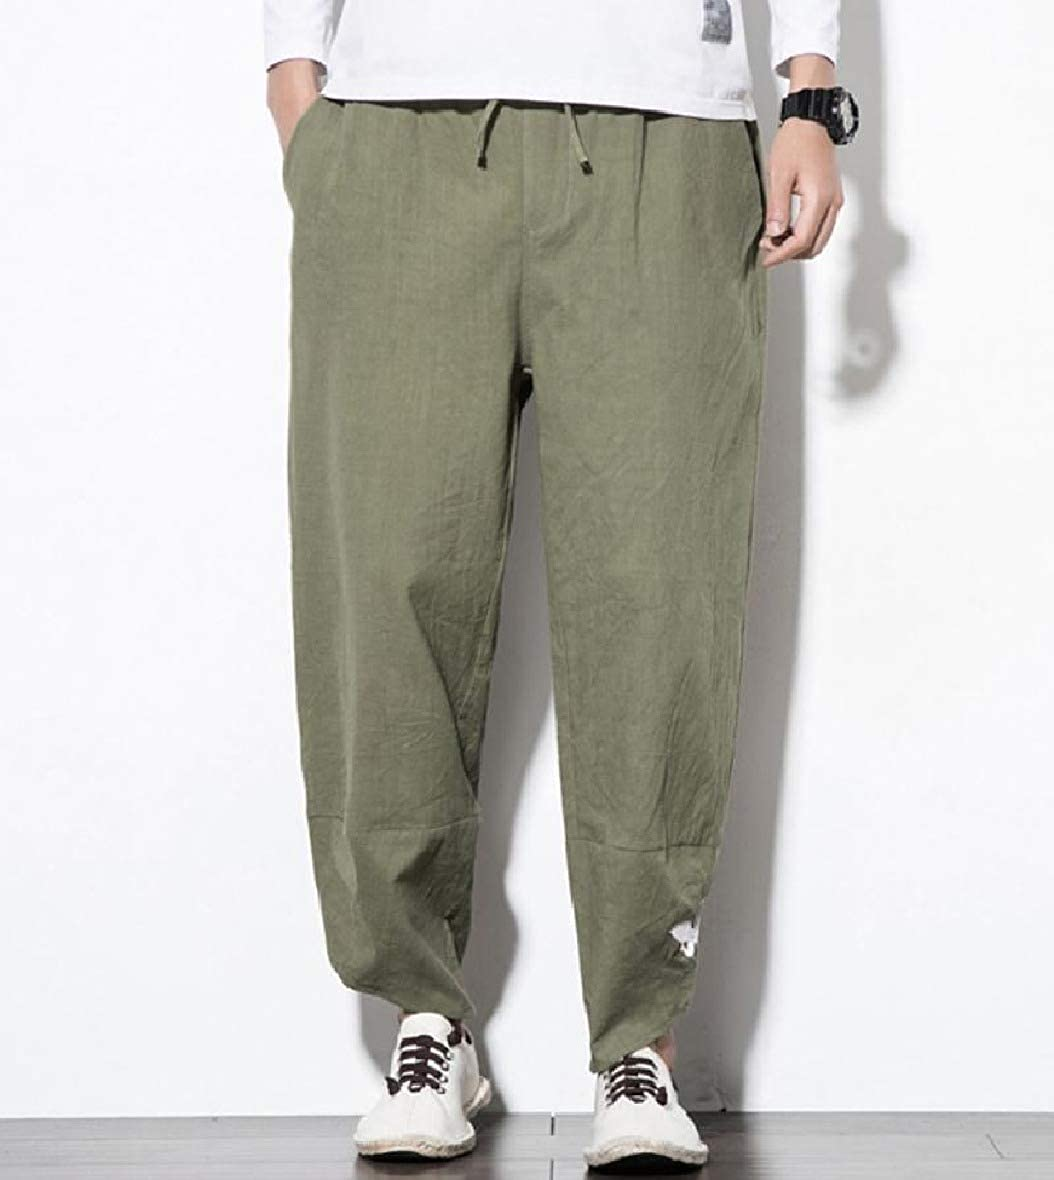 RDHOPE-Men Embroidered Big /& Tall Harem Baggy Work to Weekend Comfort Pants